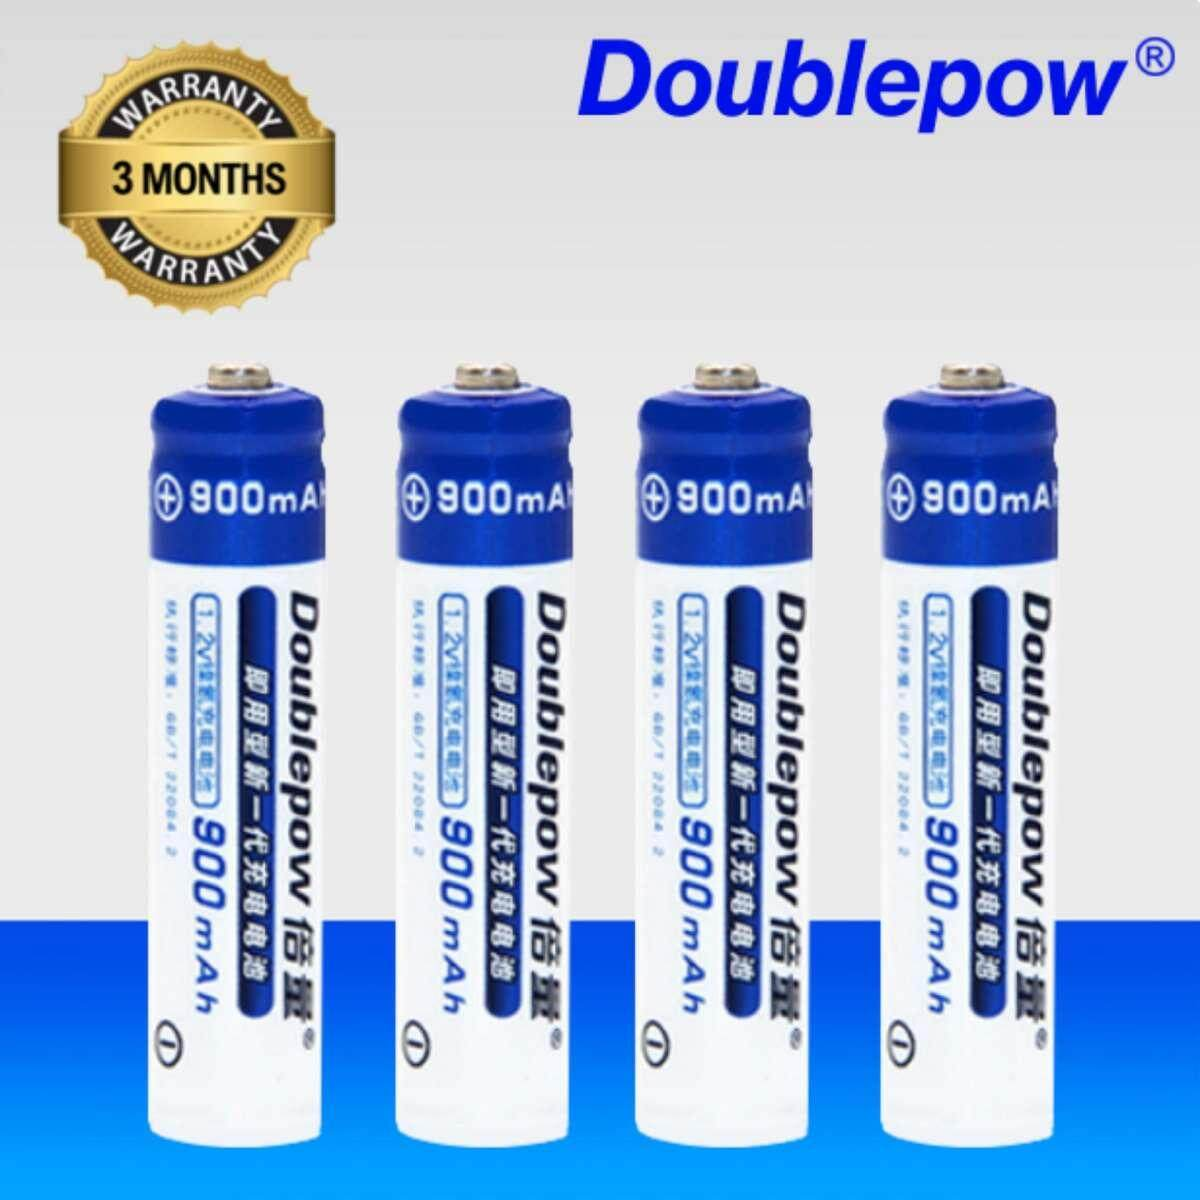 [4 Pcs] Aaa 1.2v Rechargeable Battery Original Doublepow / 900mah Aaa Rechargeable Battery [3 Months Warranty] By Fly Automart.